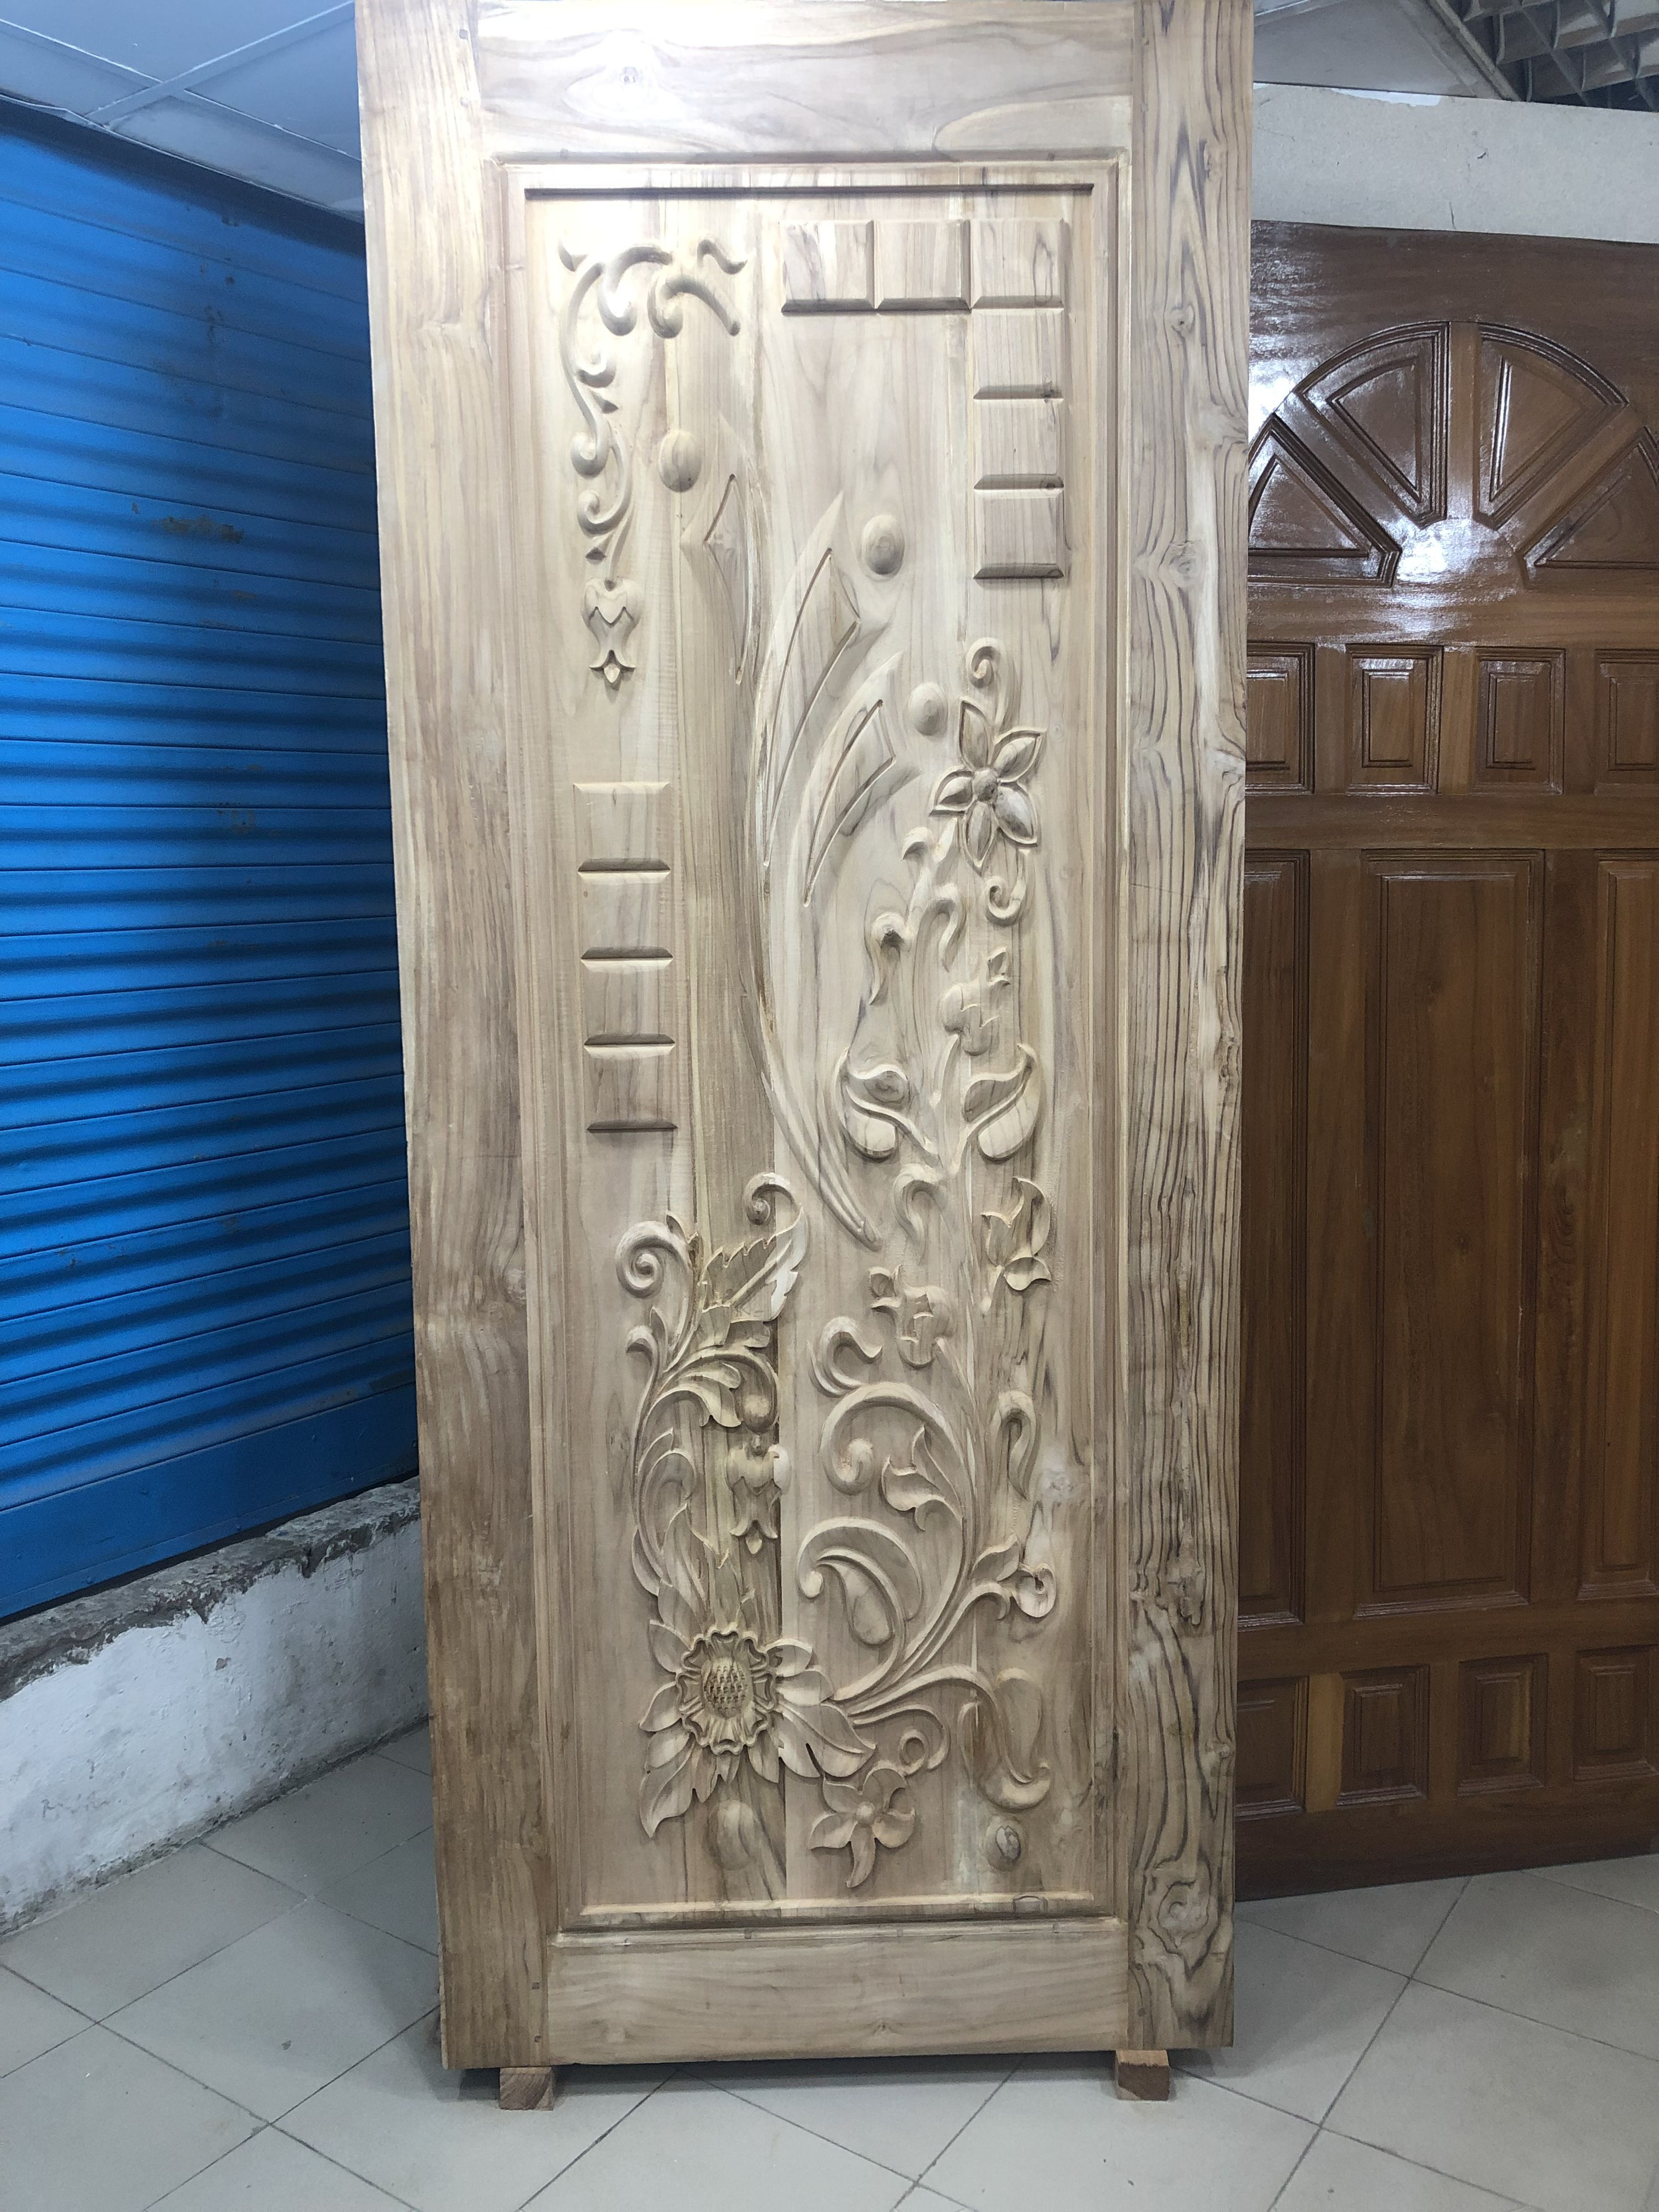 Solid Wooden Door Chittagong Shegune Price 18500 231 25 Contact 01684246063 Wooden Front Door Design Entrance Door Design Wooden Door Design